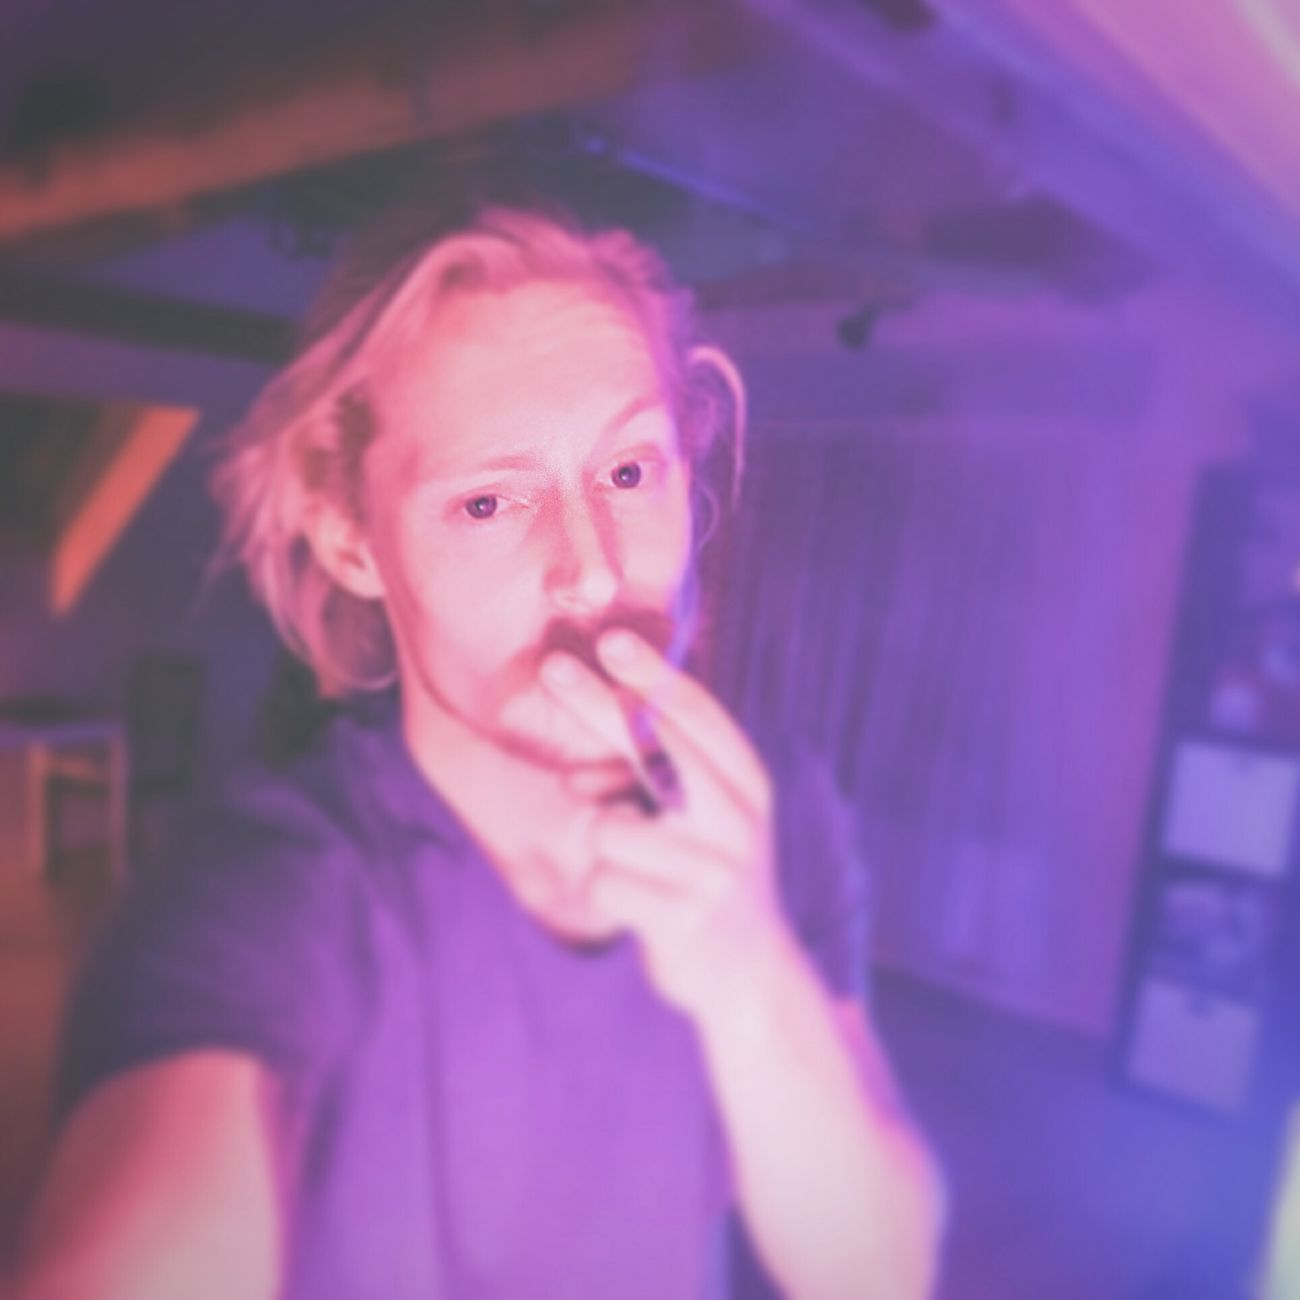 Hello World That's Me Enjoying Marijuana Have A Good Night!!! Great Lighting Conditions PhilipsHue